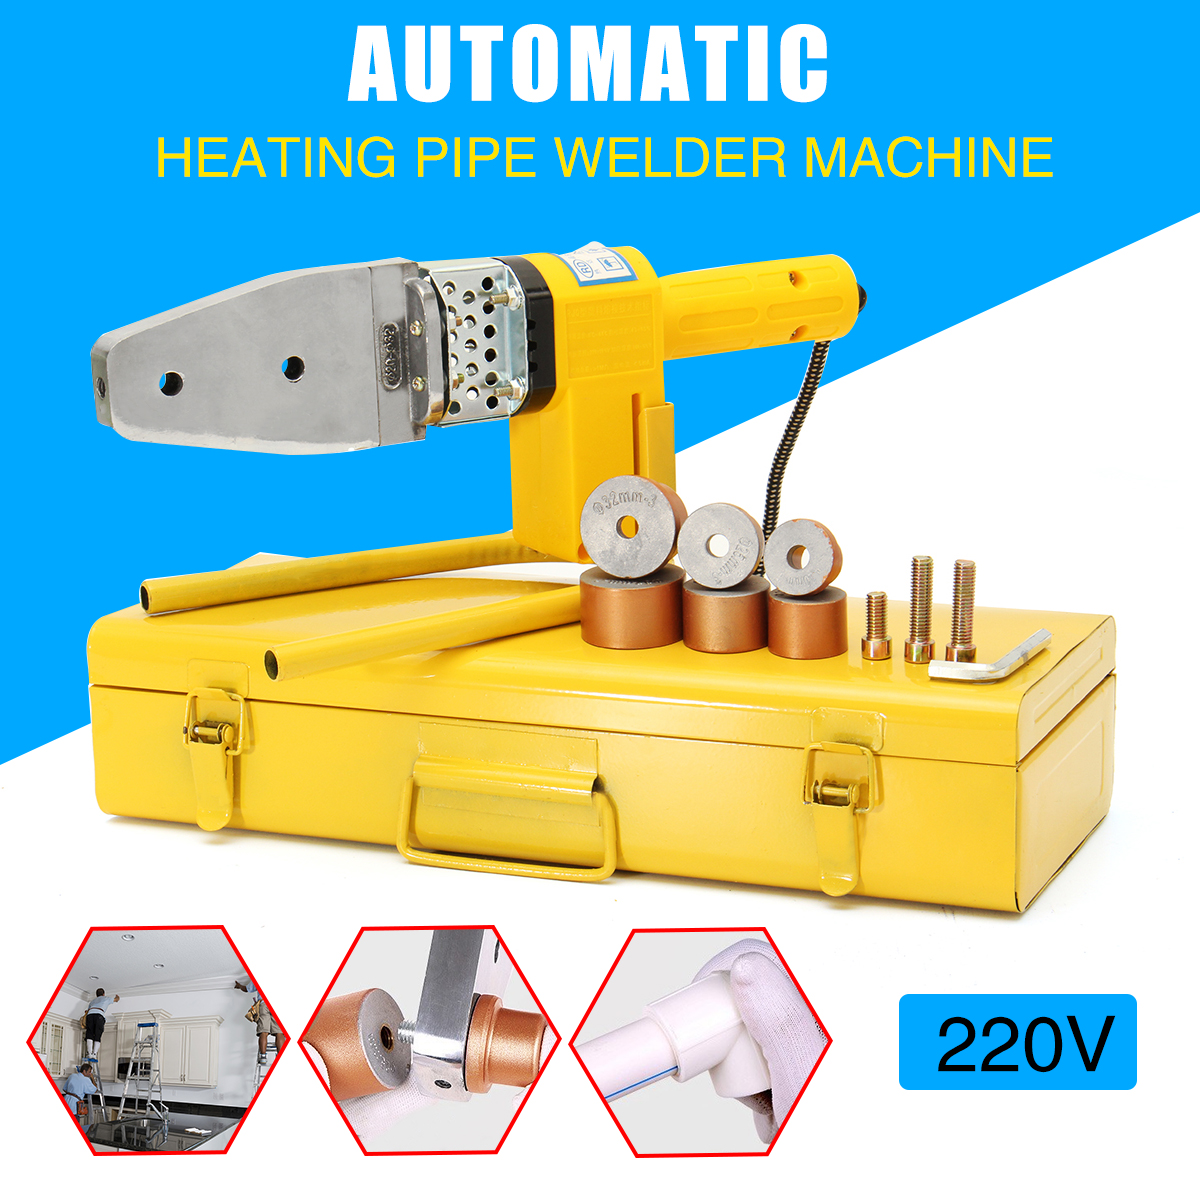 220V 8Pcs Electric Hot Welding Machine Heating Tool PPR PE PP Tube Pipe Welding Machine Electric Welding Tool Accessories 220v 600w pipe welding machine temperature controlled heating ppr pe pp tube pipe welding machine heads kits